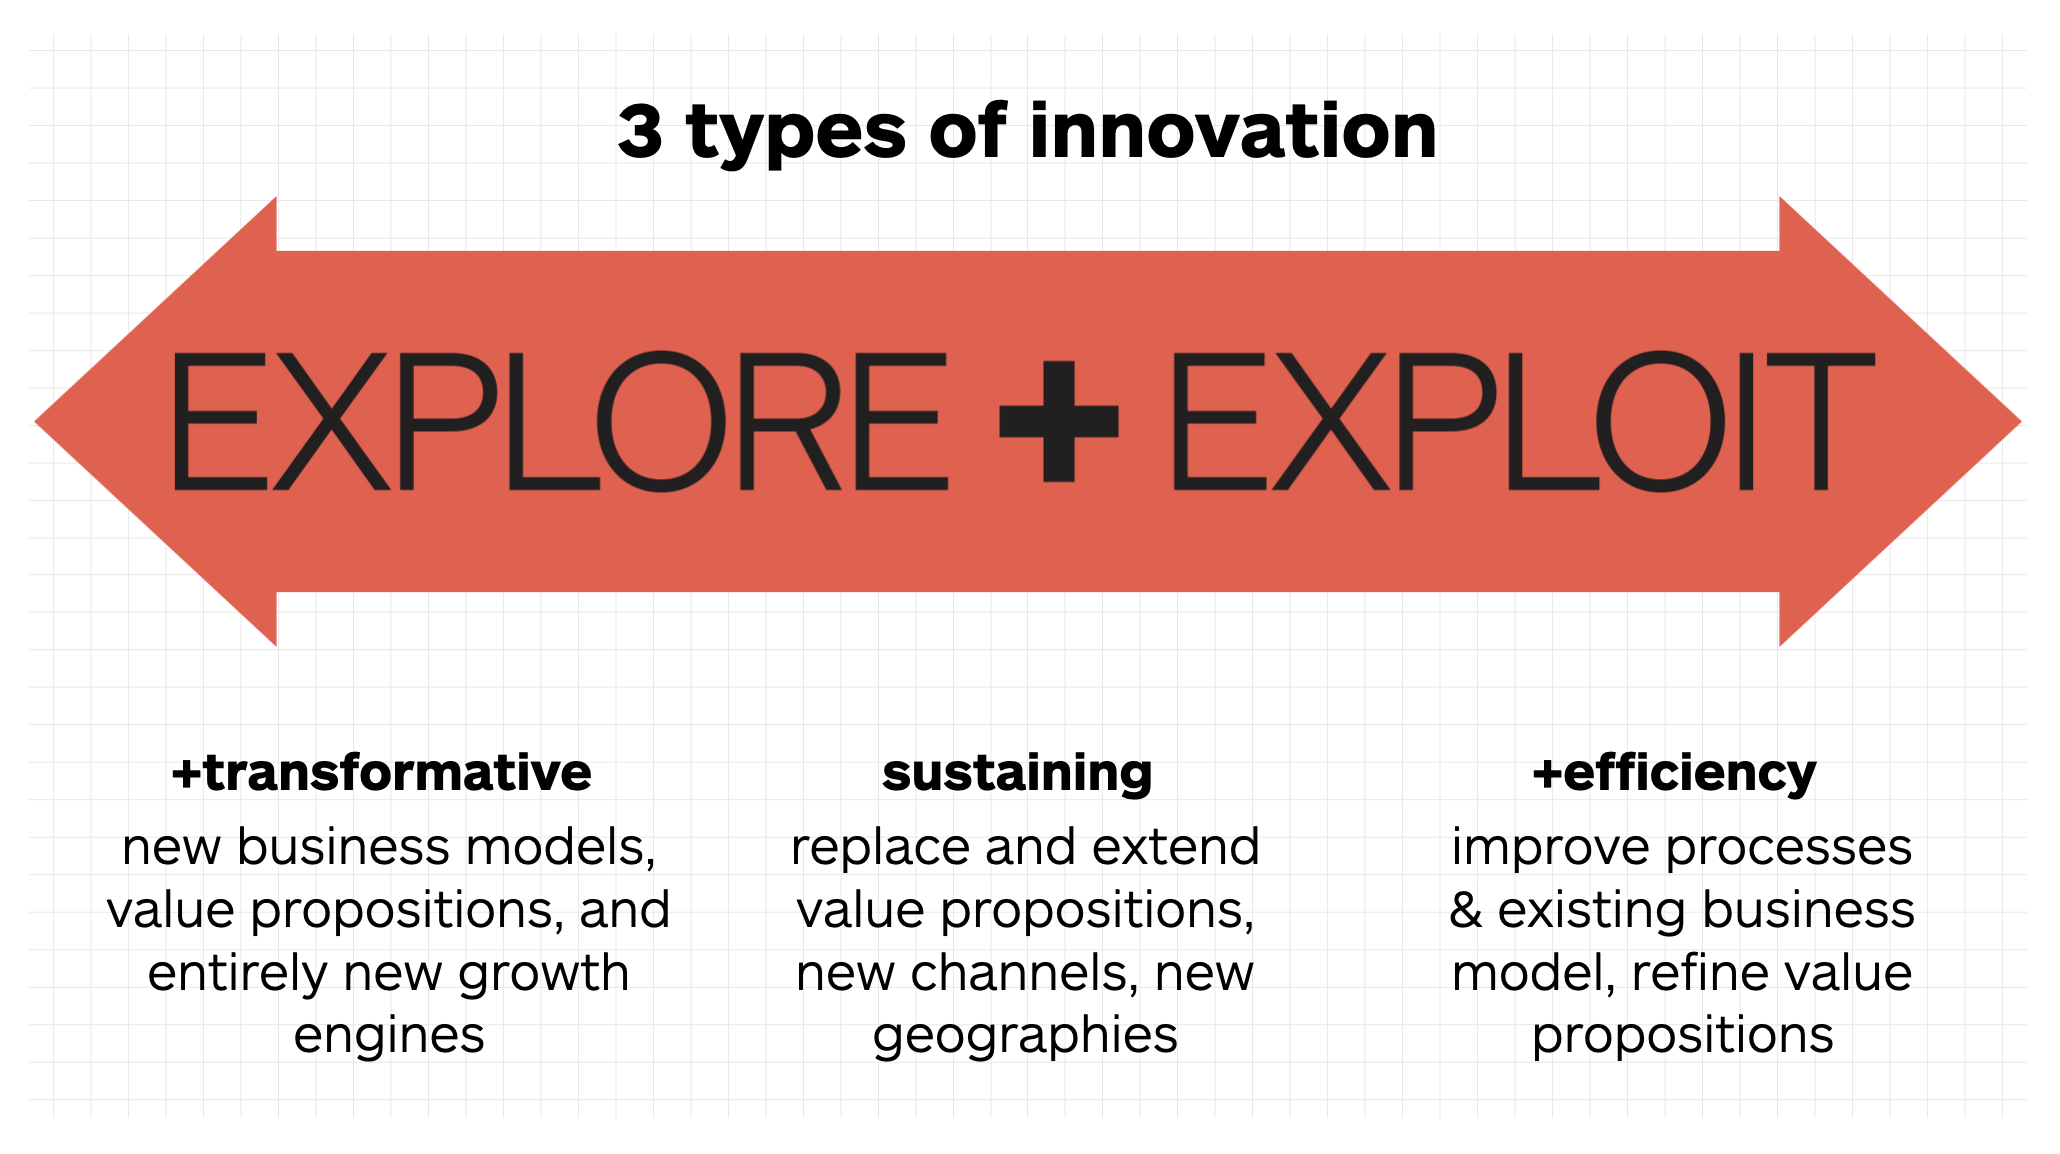 3 Types of Innovation